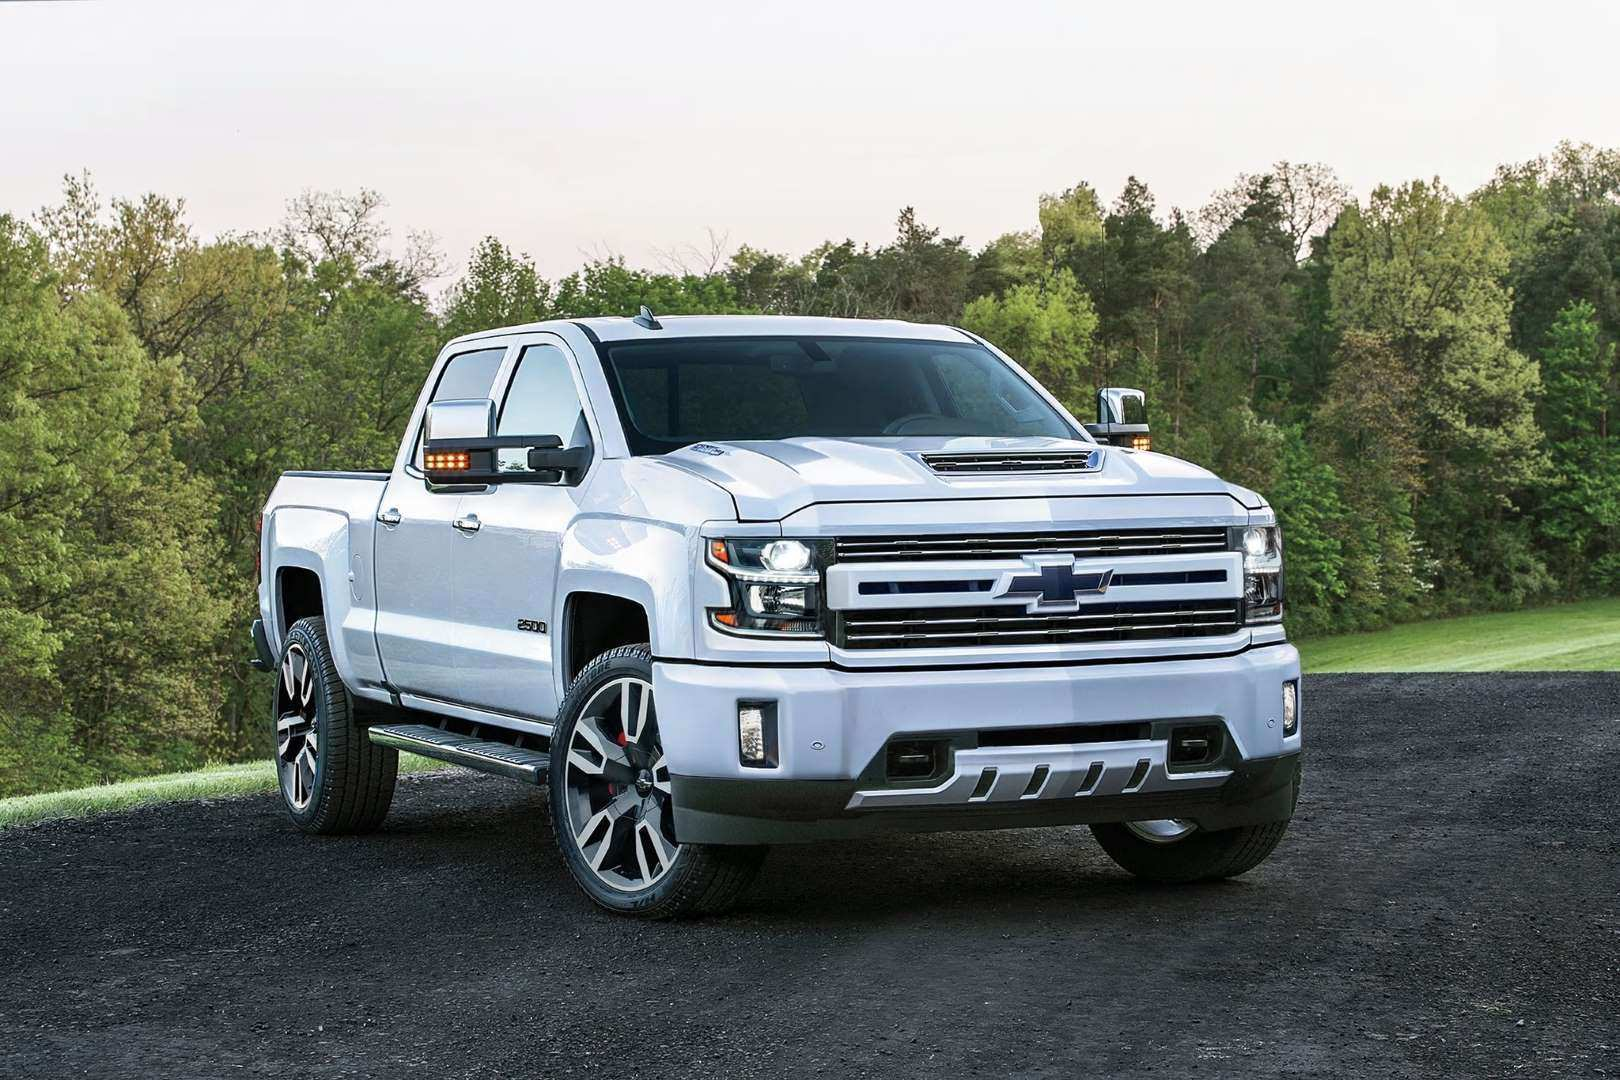 44 The 2019 Chevrolet Silverado 4500 Hd Specs and Review for 2019 Chevrolet Silverado 4500 Hd